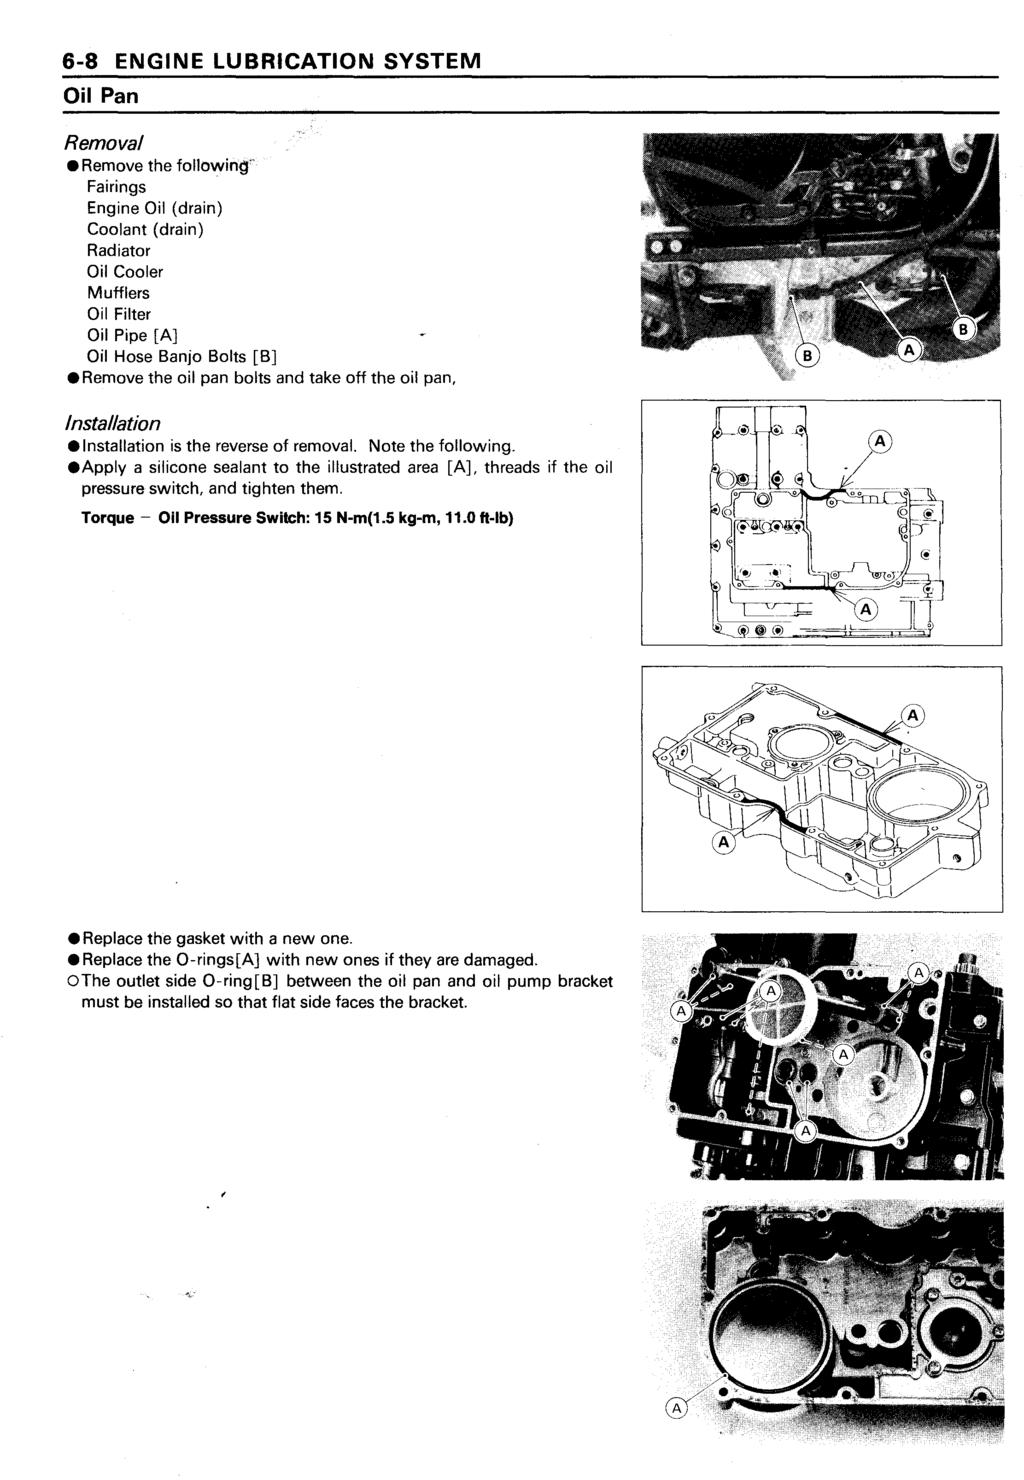 Ninja Zx 11 Zz R1100 Kawasaki Motorcycle Service Manual Pdf Zx11 Wiring Diagram 6 8 Engine Lubrication System Oil Pan Removal Remove The Fol1owin